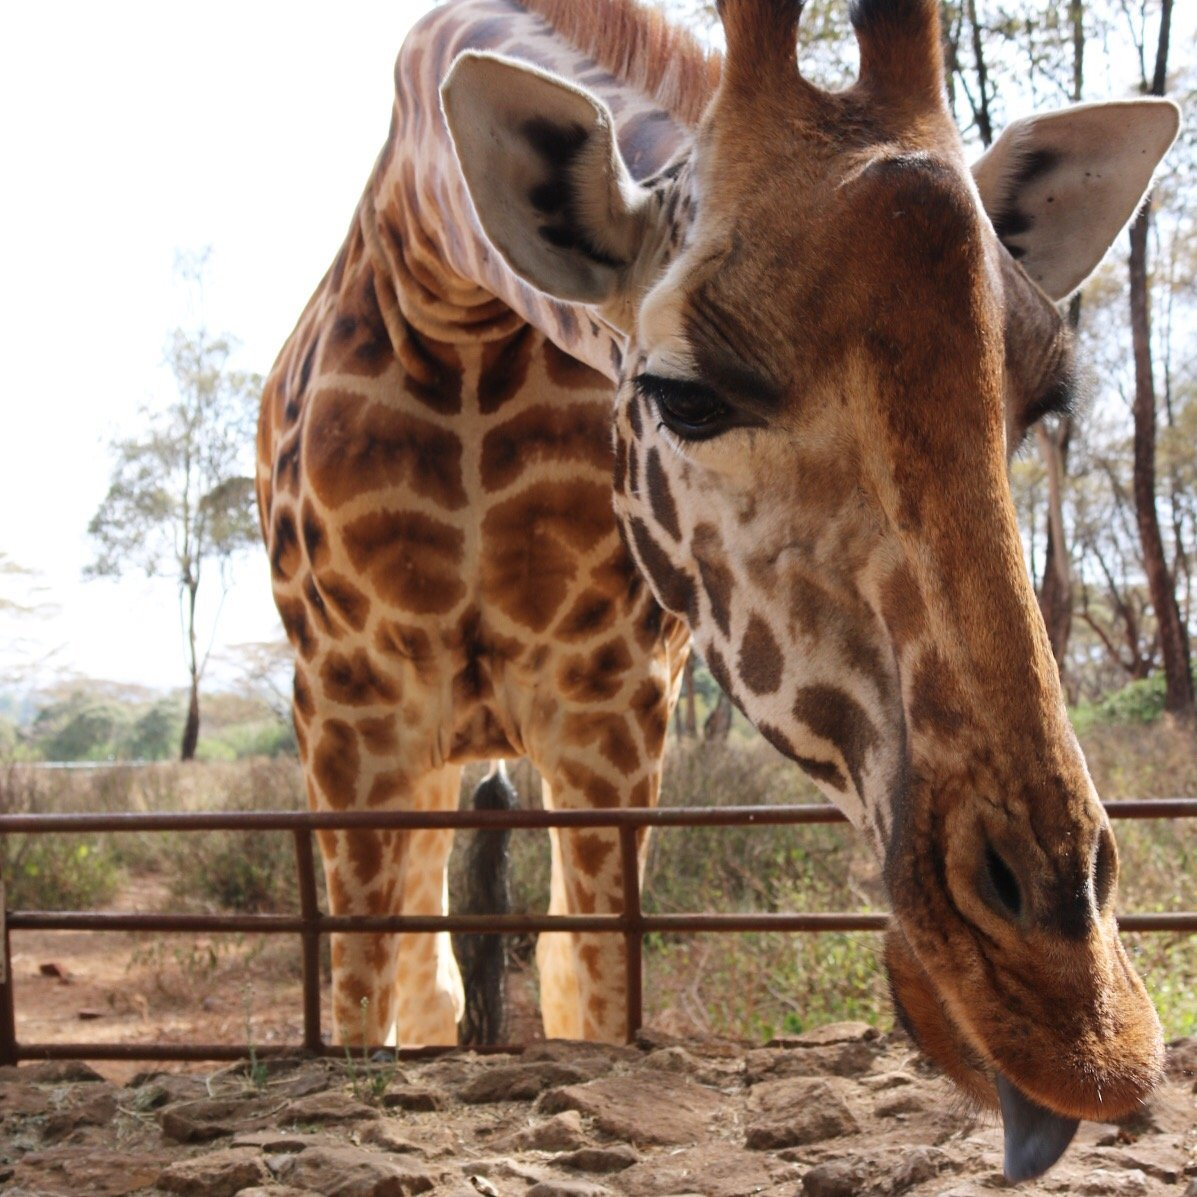 Feeding and Kissing Giraffes at The Giraffe Centre, Nairobi, Kenya